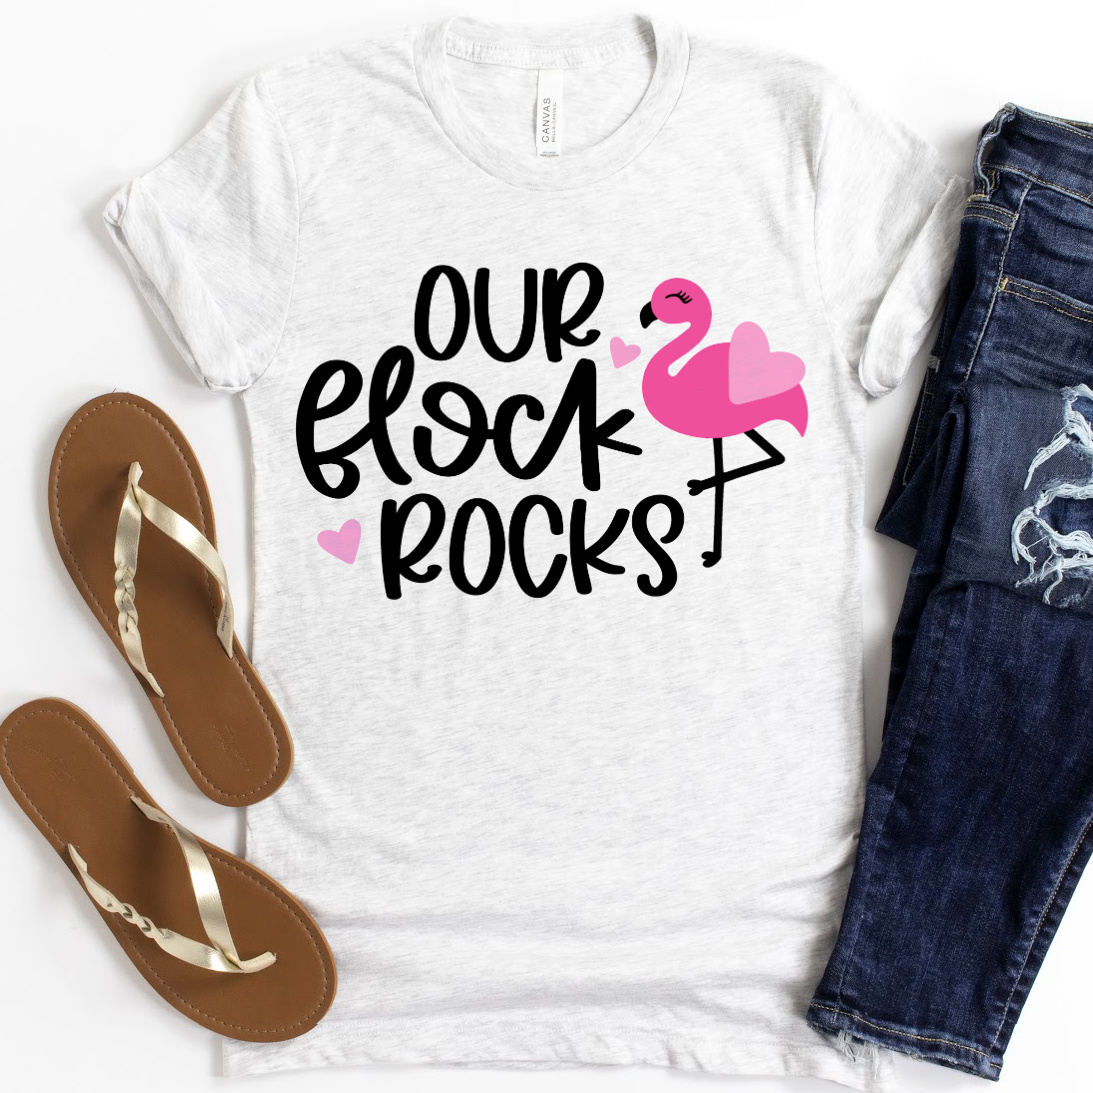 Our Flock Rocks SVG on white shirt - Flamingo SVG Collection